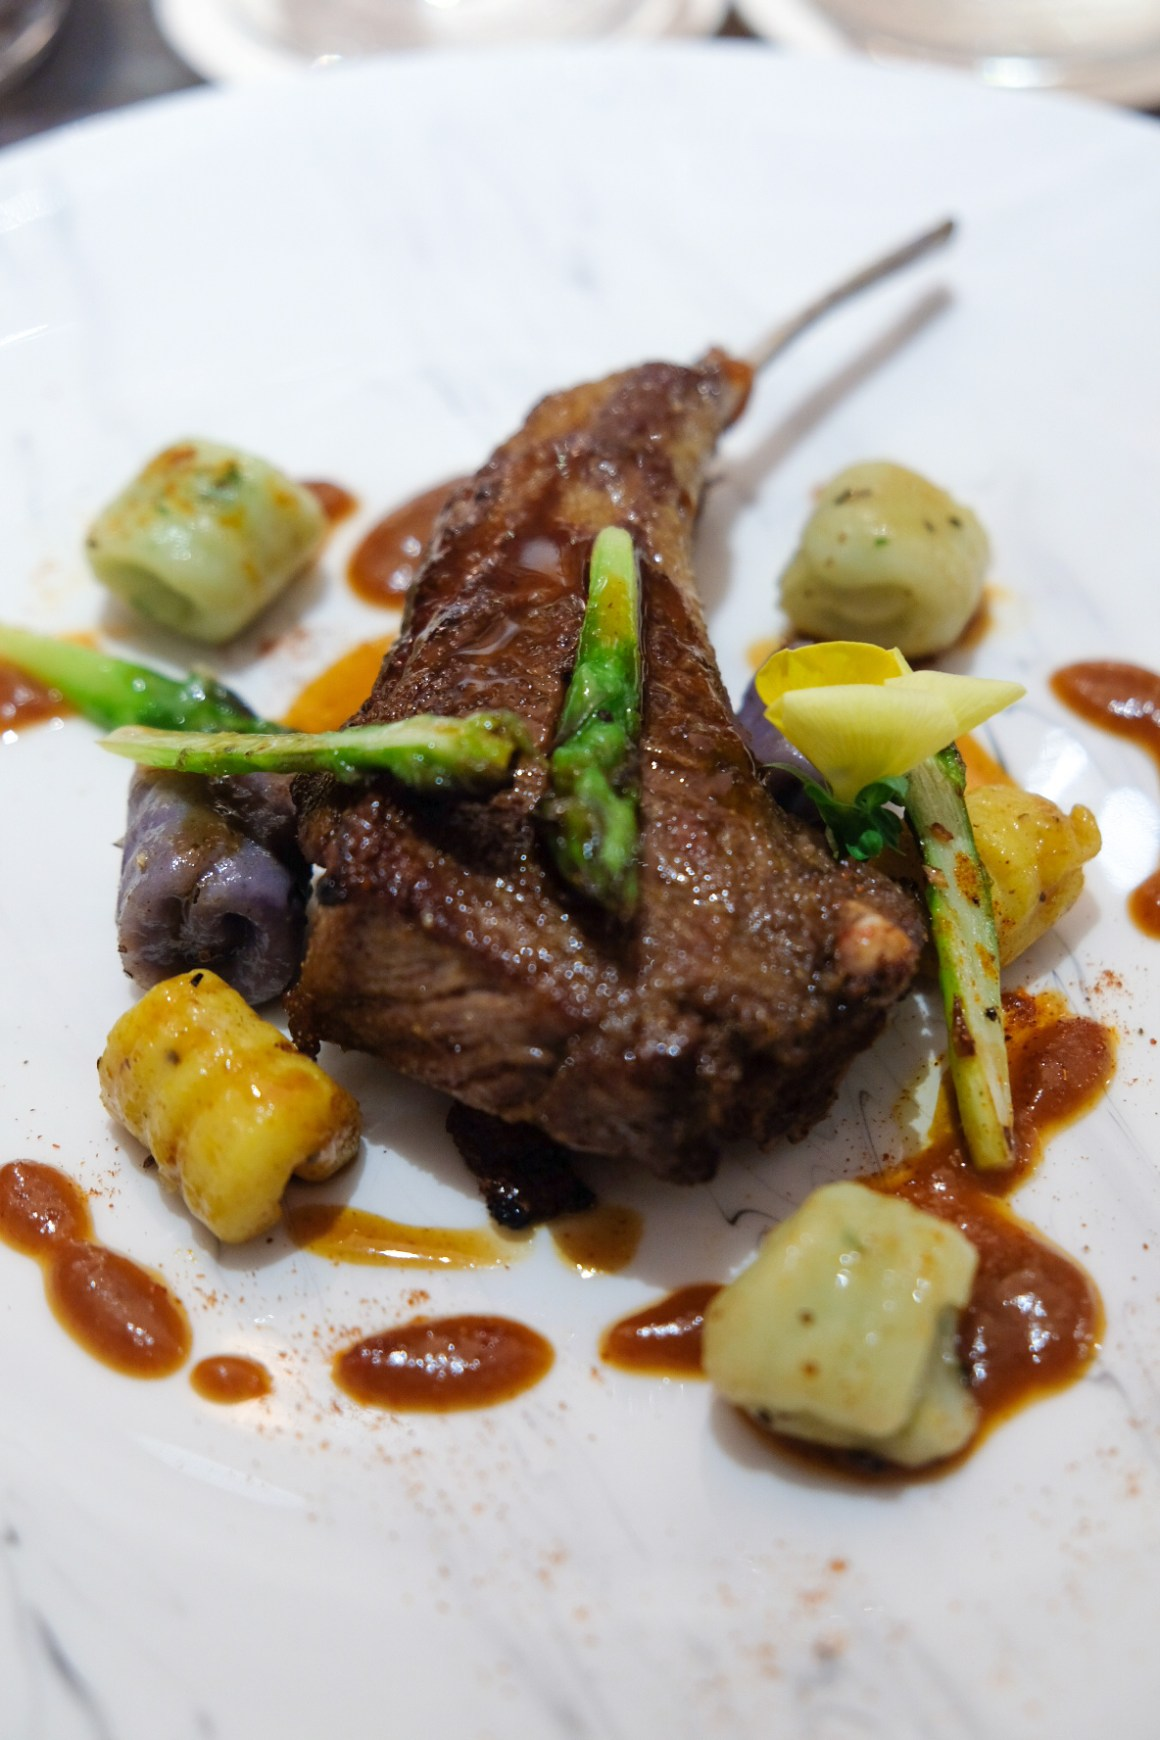 French Master Chef Roland Durand Is At Ginett Restaurant & Wine Bar - Carre D'agneau Roti Au Cumin ($40)